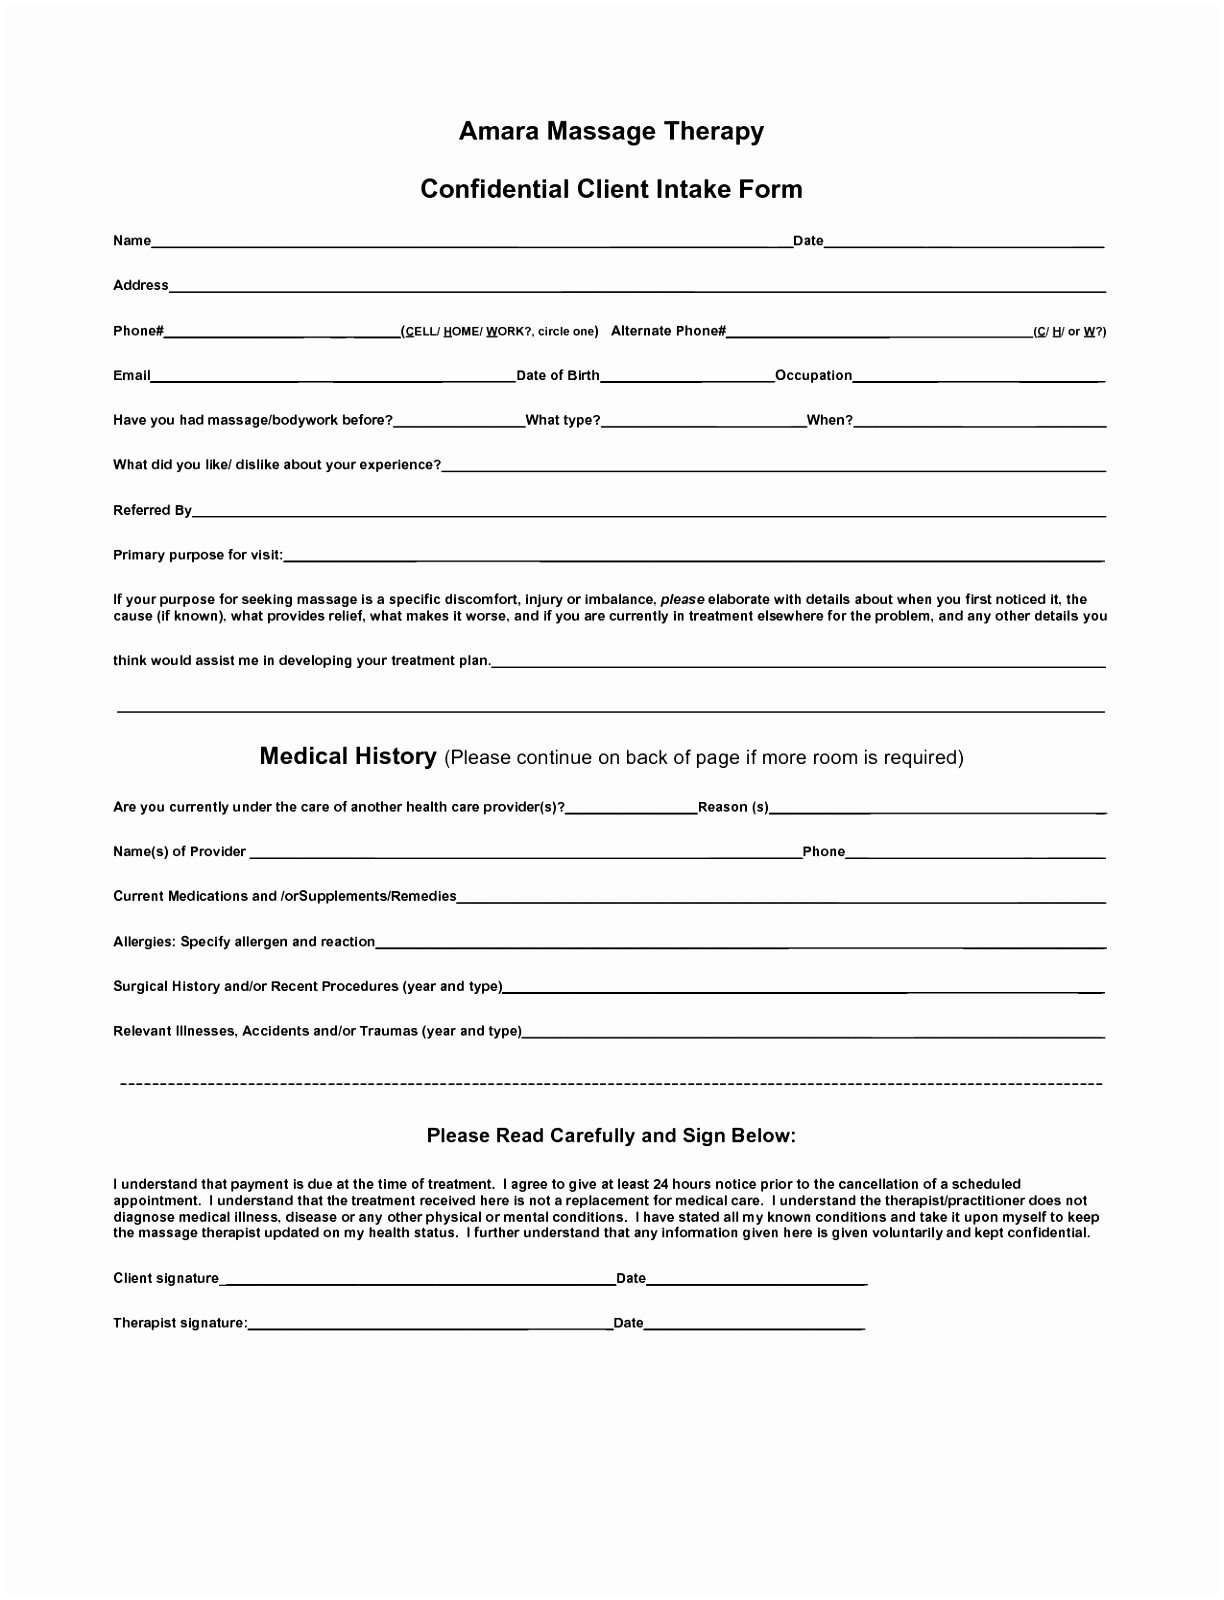 Printable Counseling Form Template